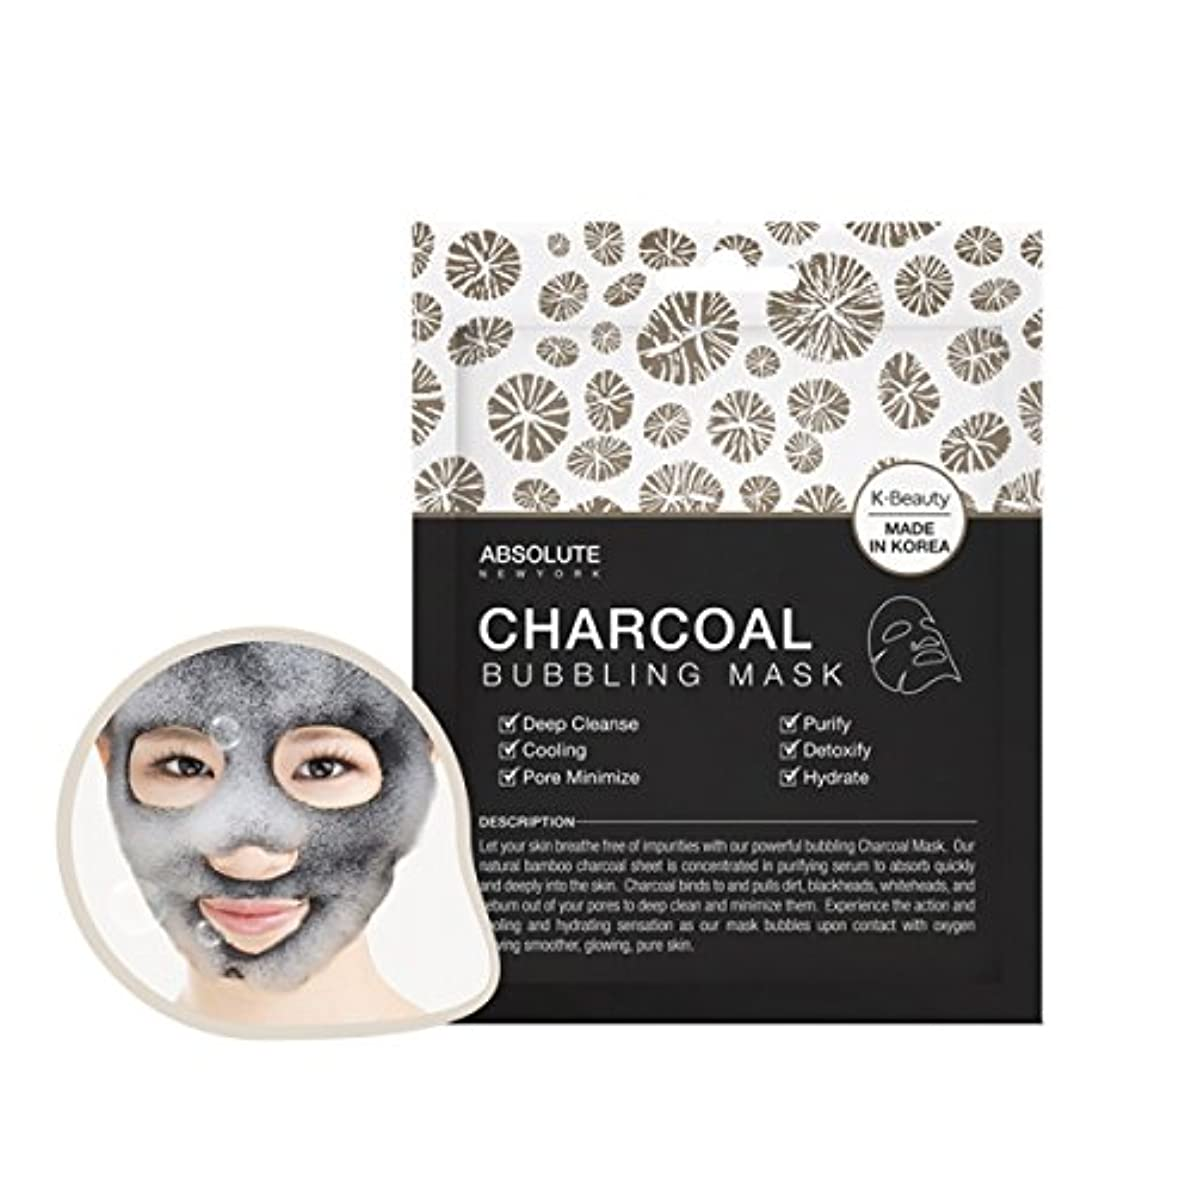 任意浮浪者誓約ABSOLUTE Charcoal Bubbling Mask (並行輸入品)